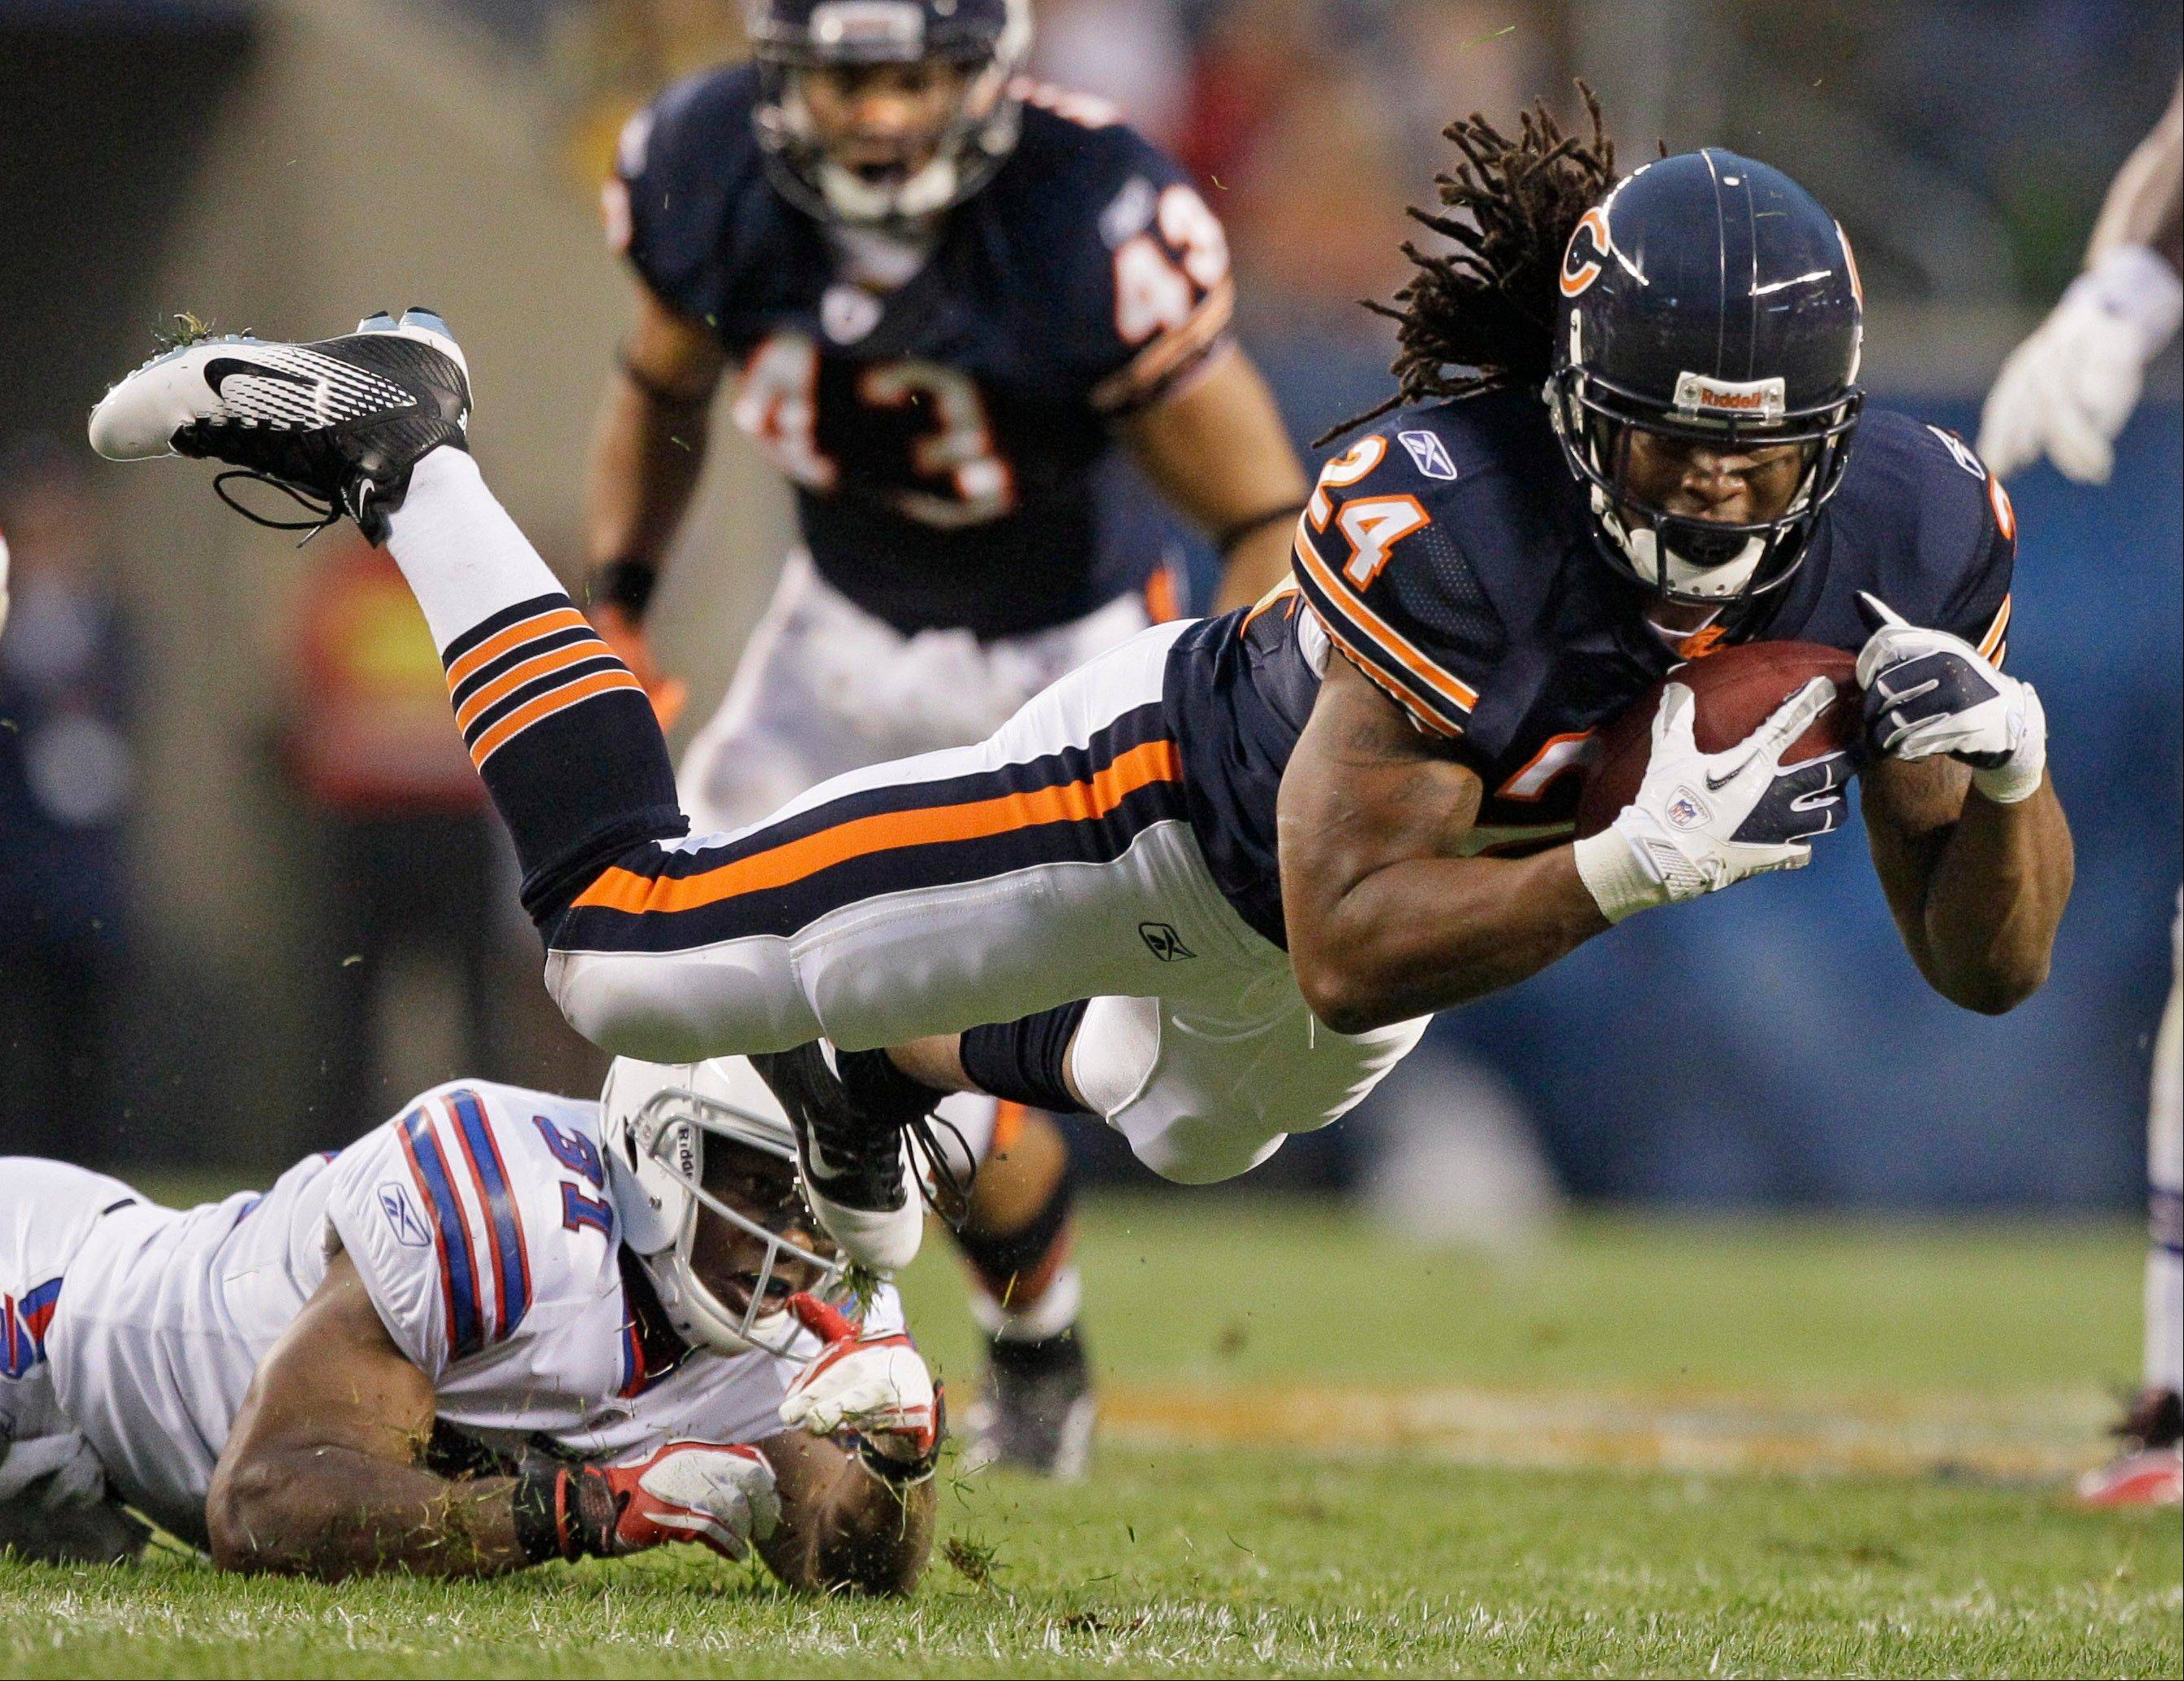 Bills safety Jairus Byrd trips up Bears running back Marion Barber in the first half of their preseason game at Soldier Field on Saturday.